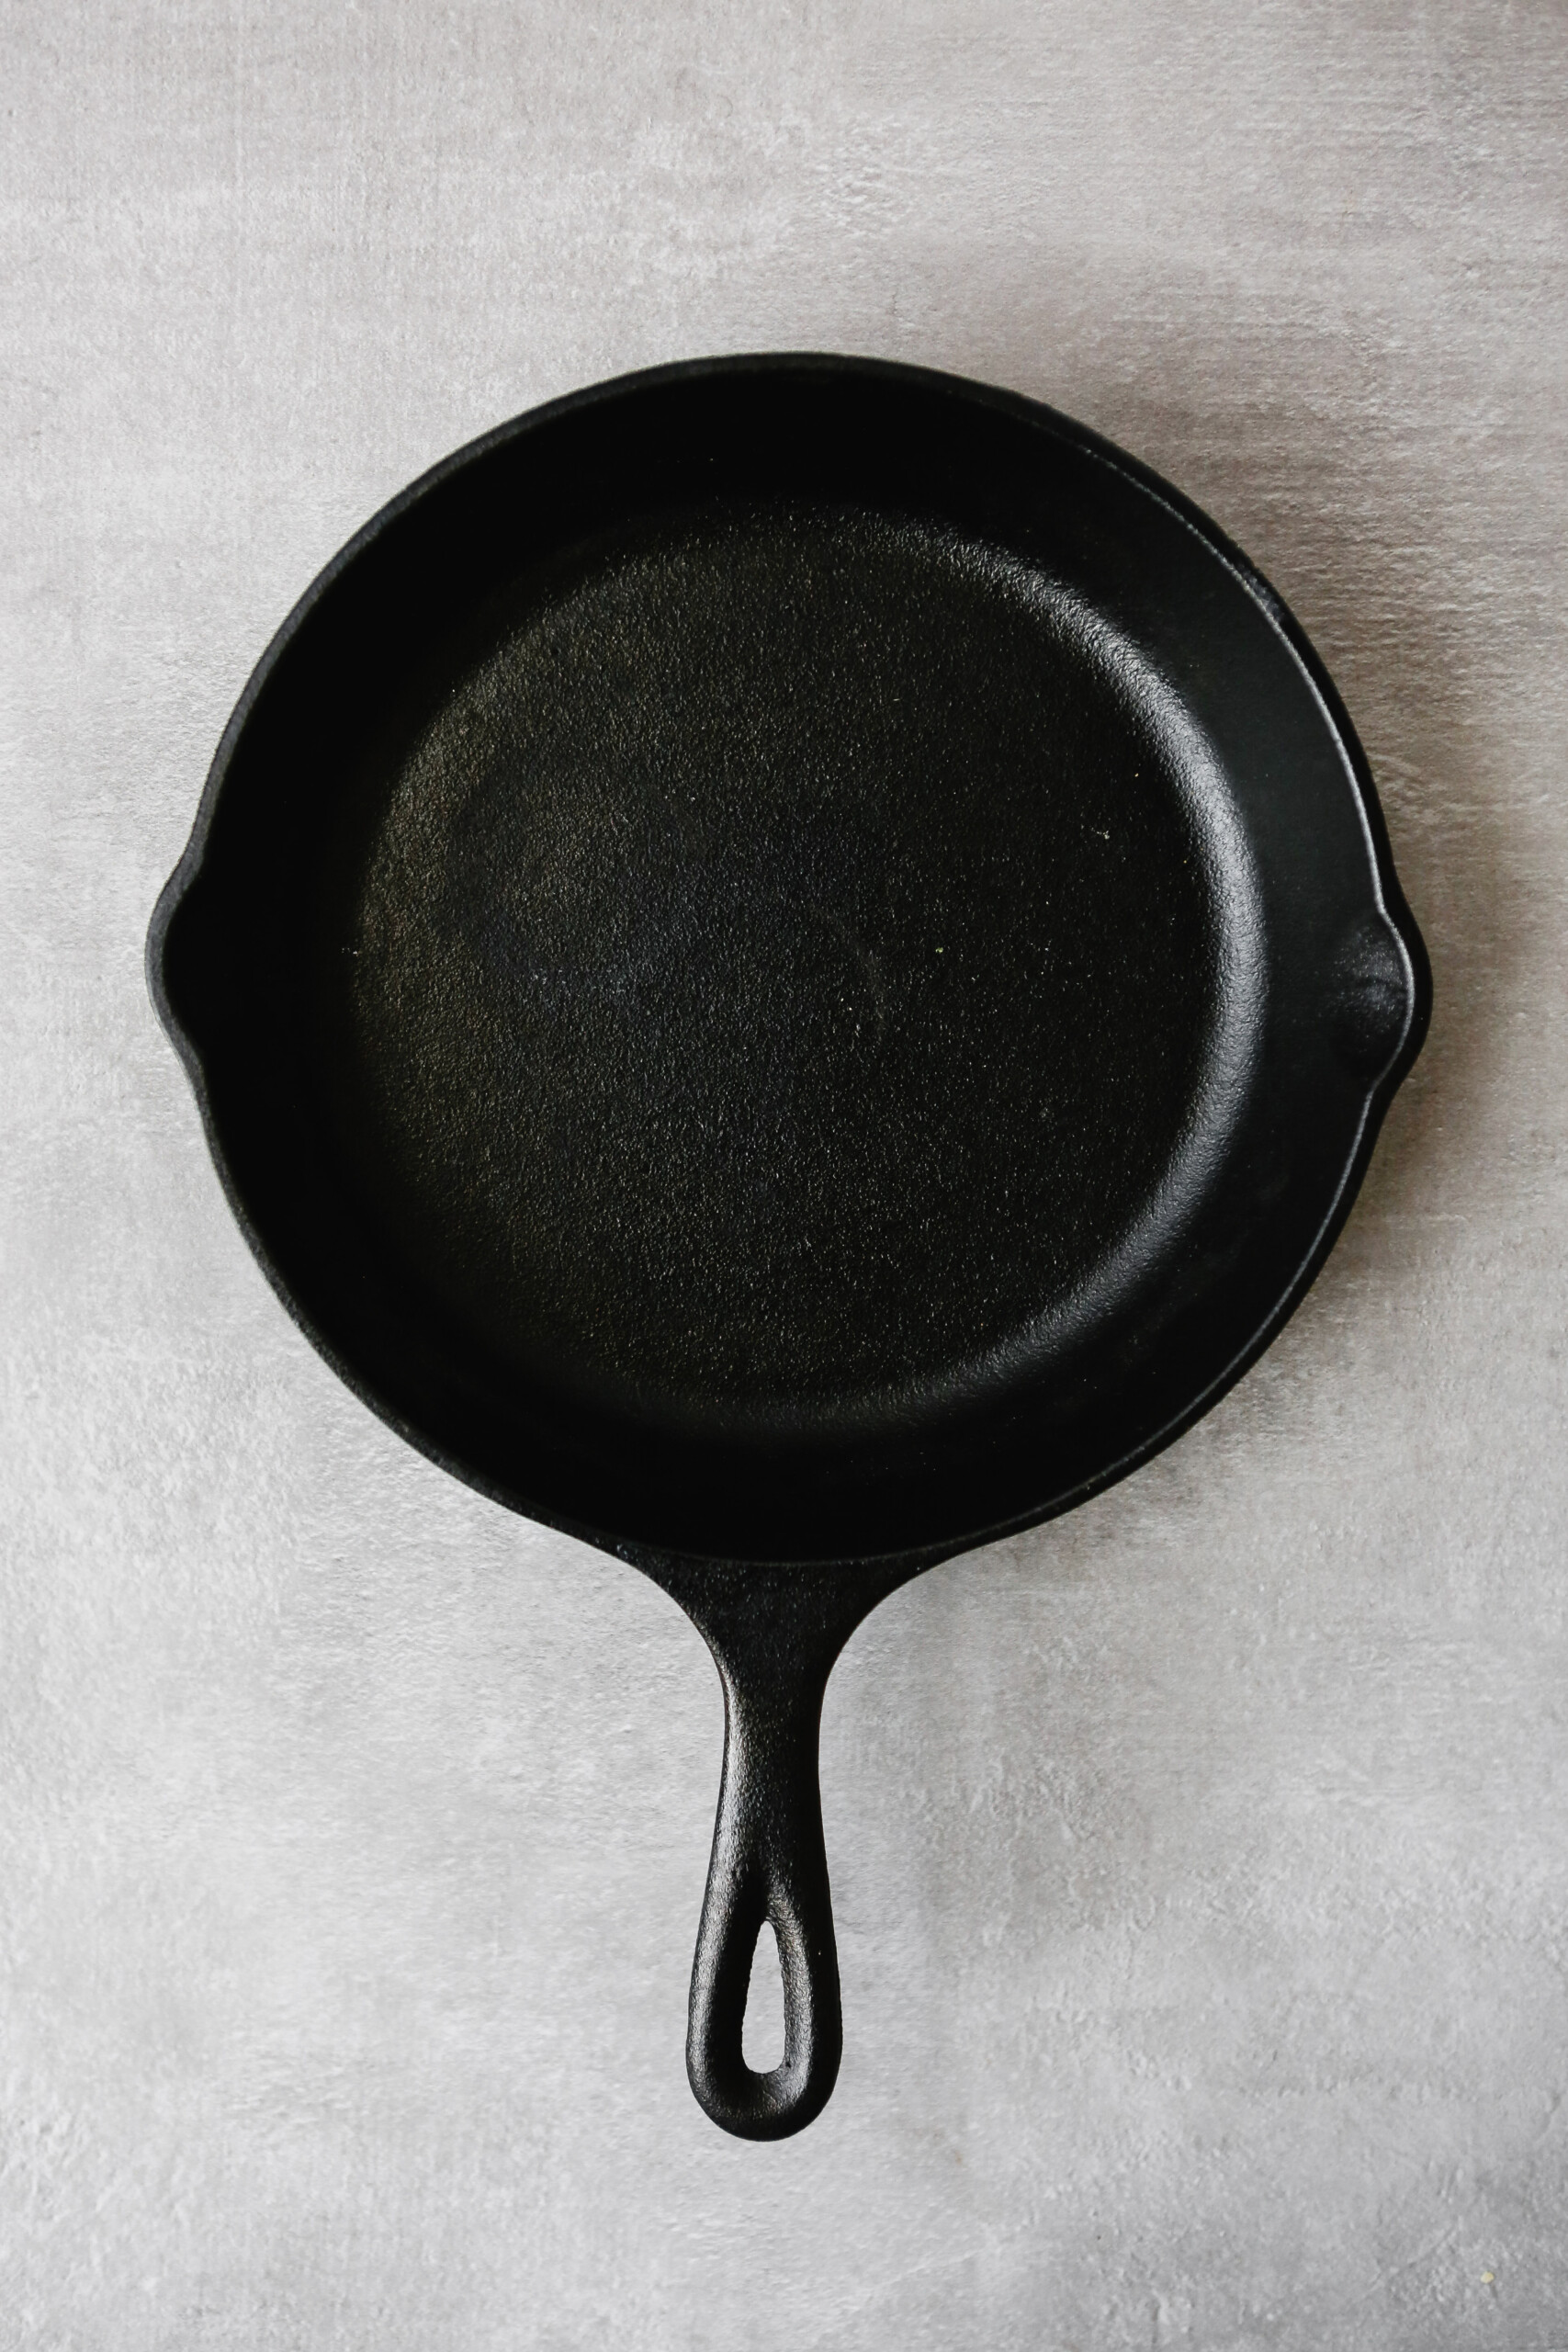 Photograph of a cast-iron skillet on a gray table